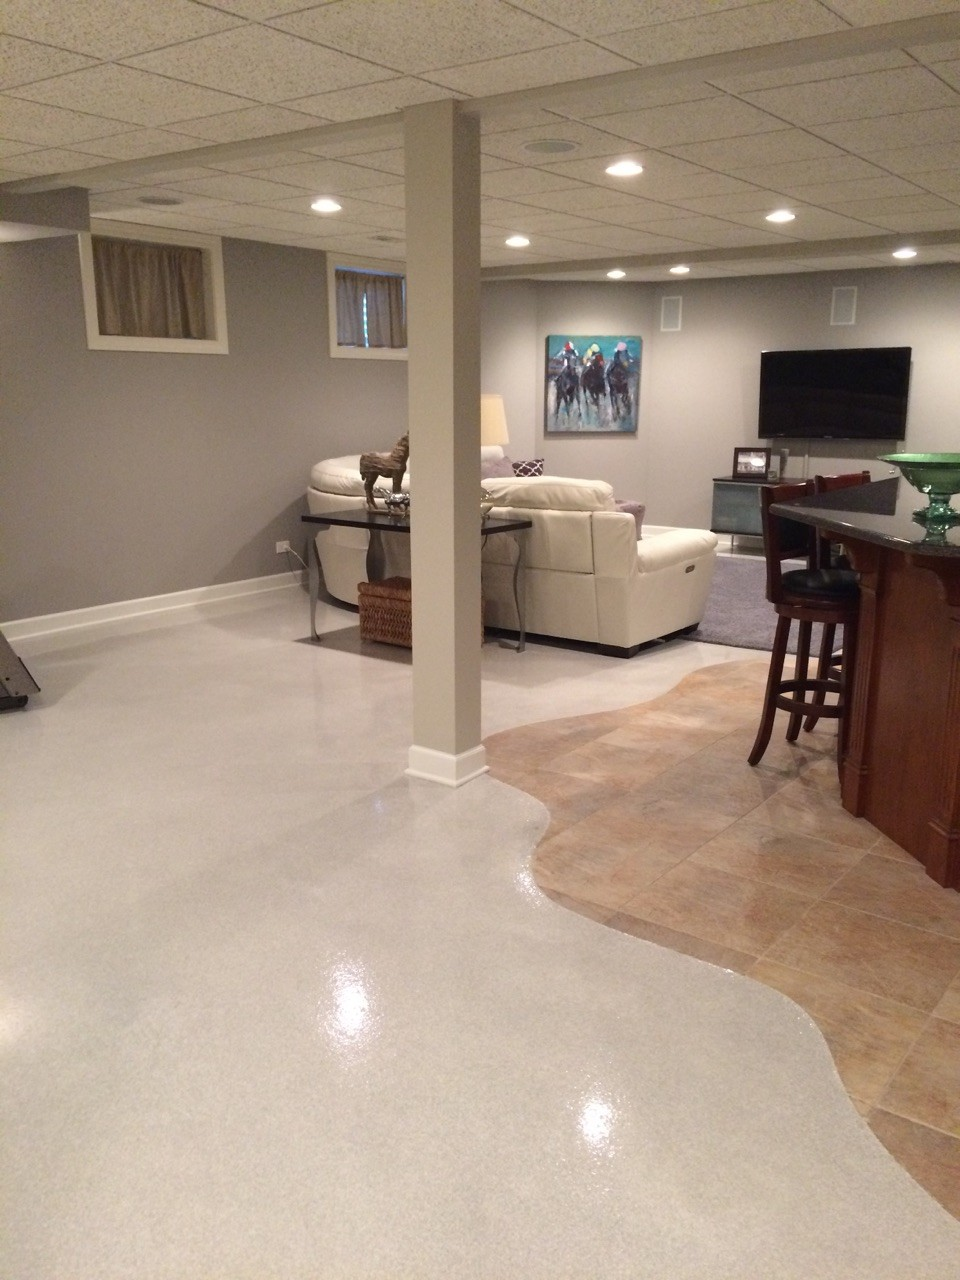 Putting Down Flake Floors in More Than Just Residential Garages